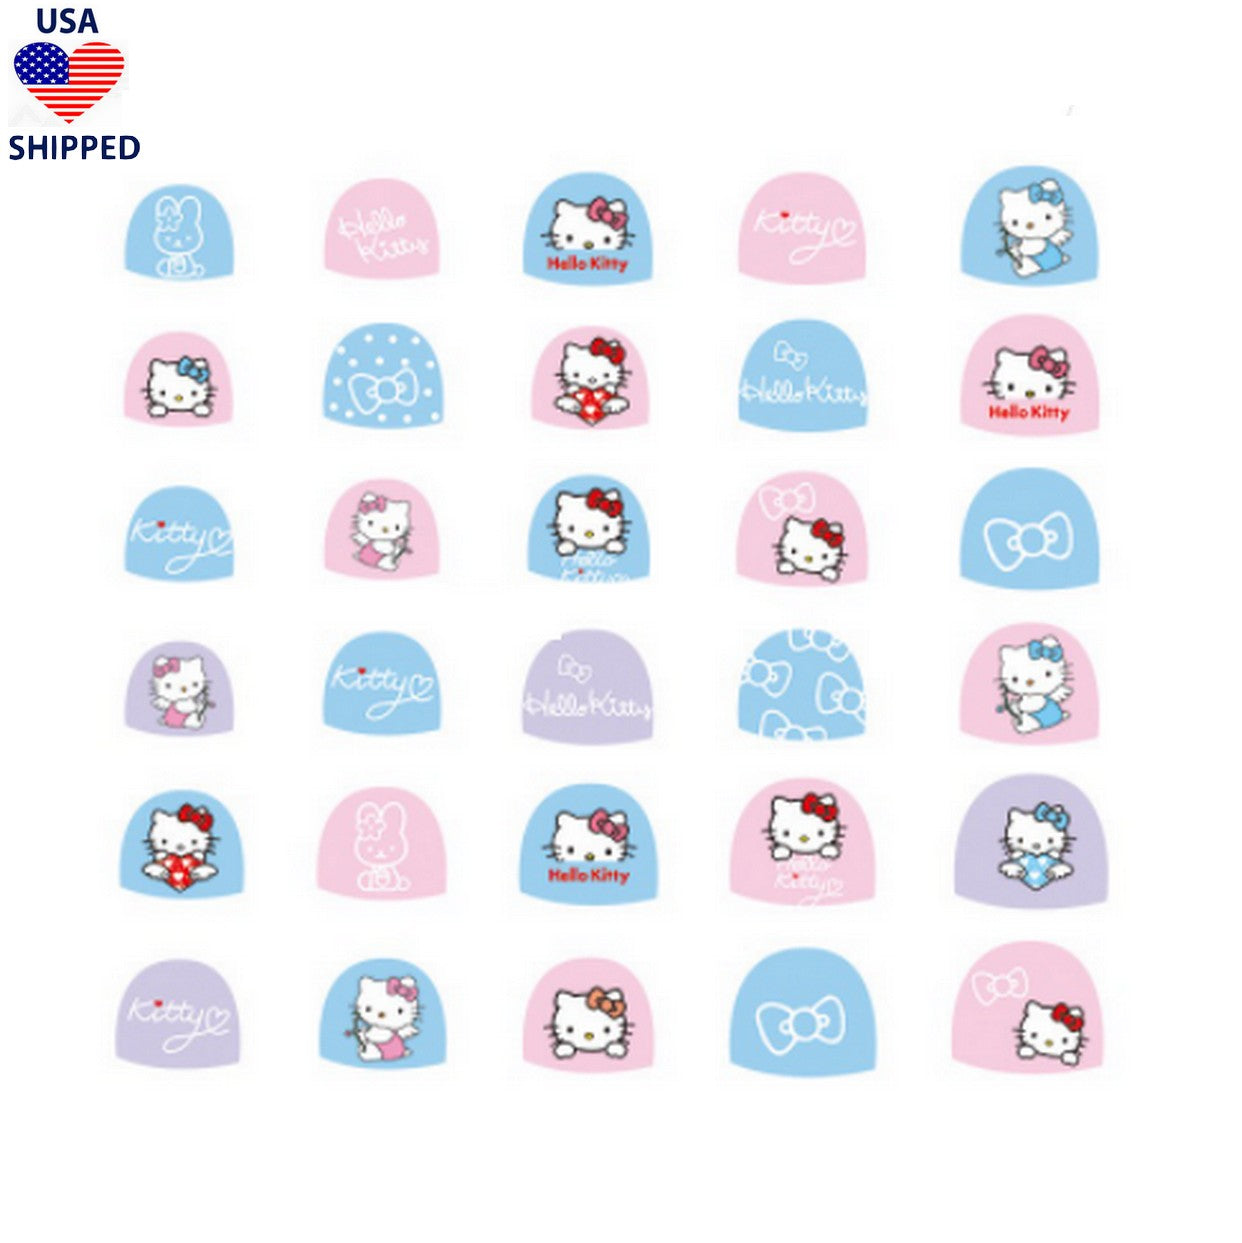 (USA) For Kids Kitty Nail Stickers